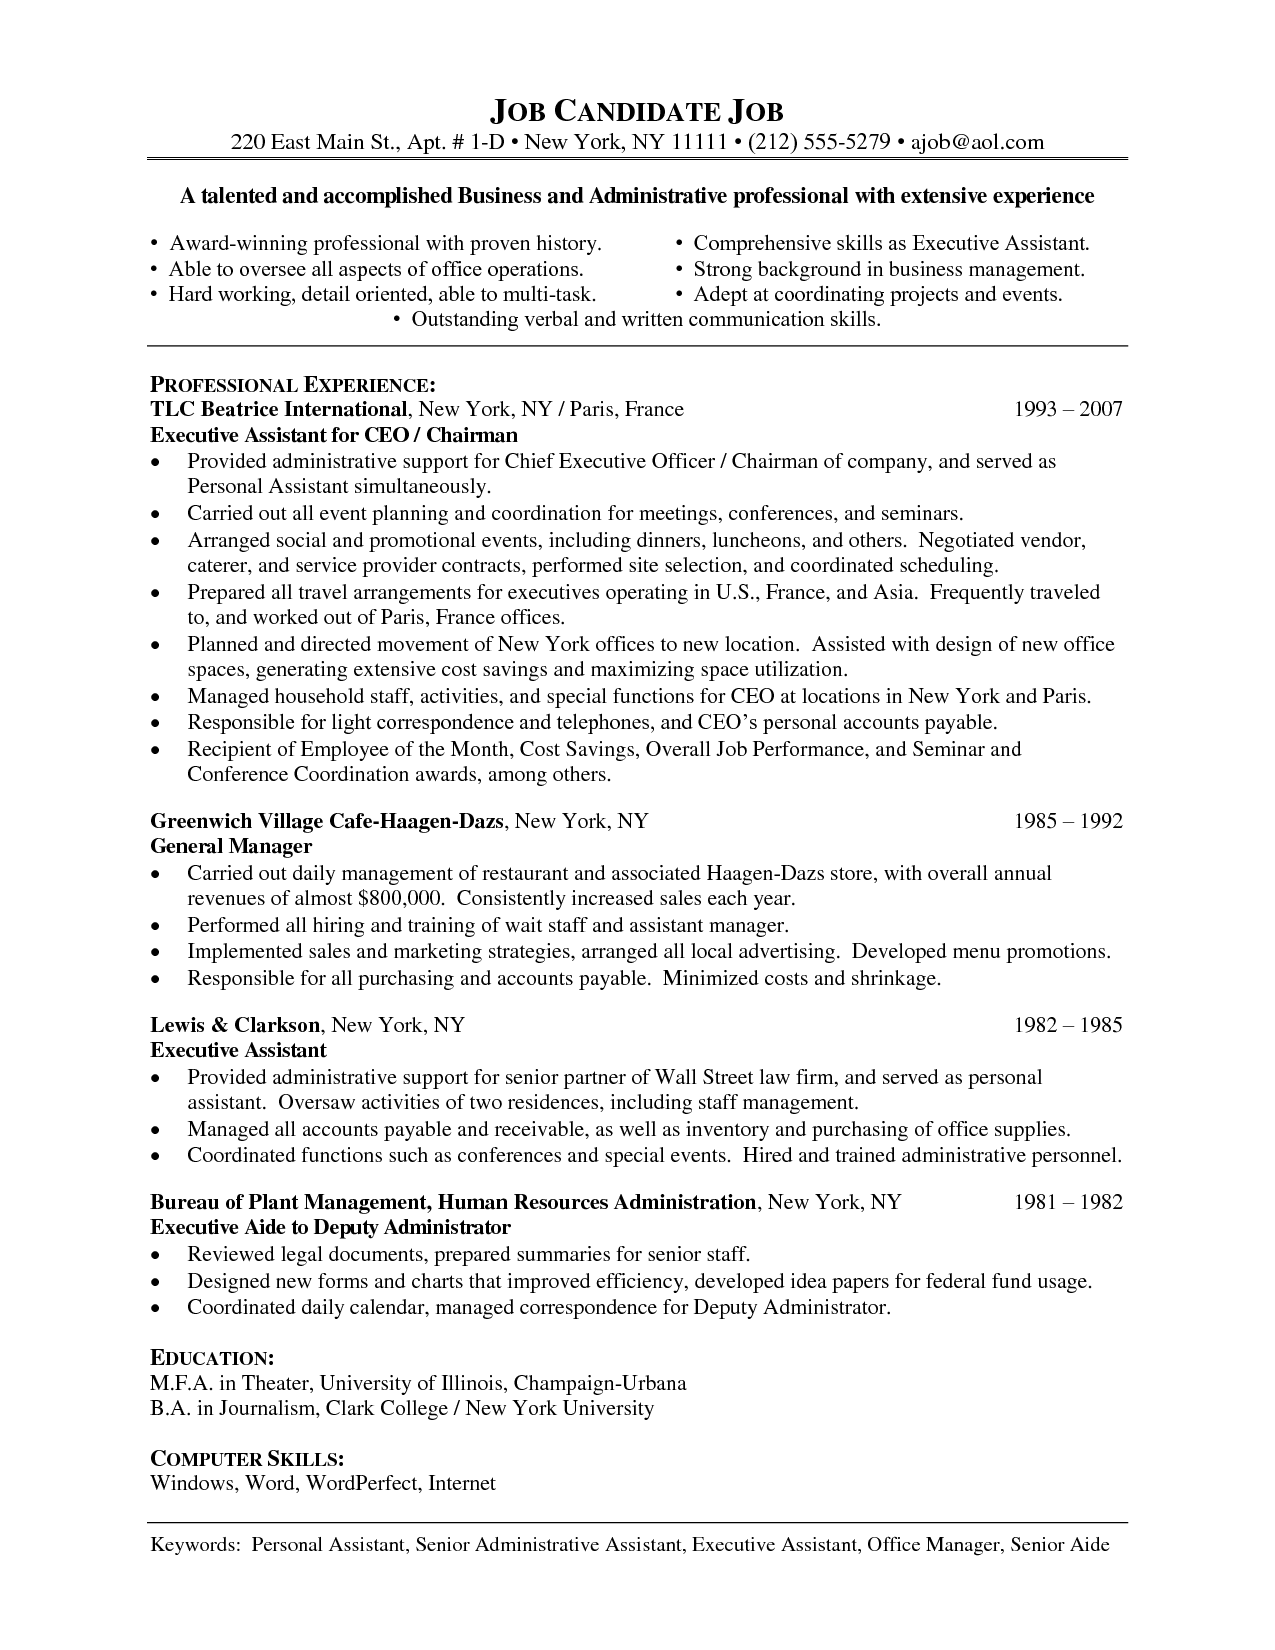 Purchasing Assistant Resume Functional Resume Template For Administrative  Assistant Word S .  Office Admin Resume